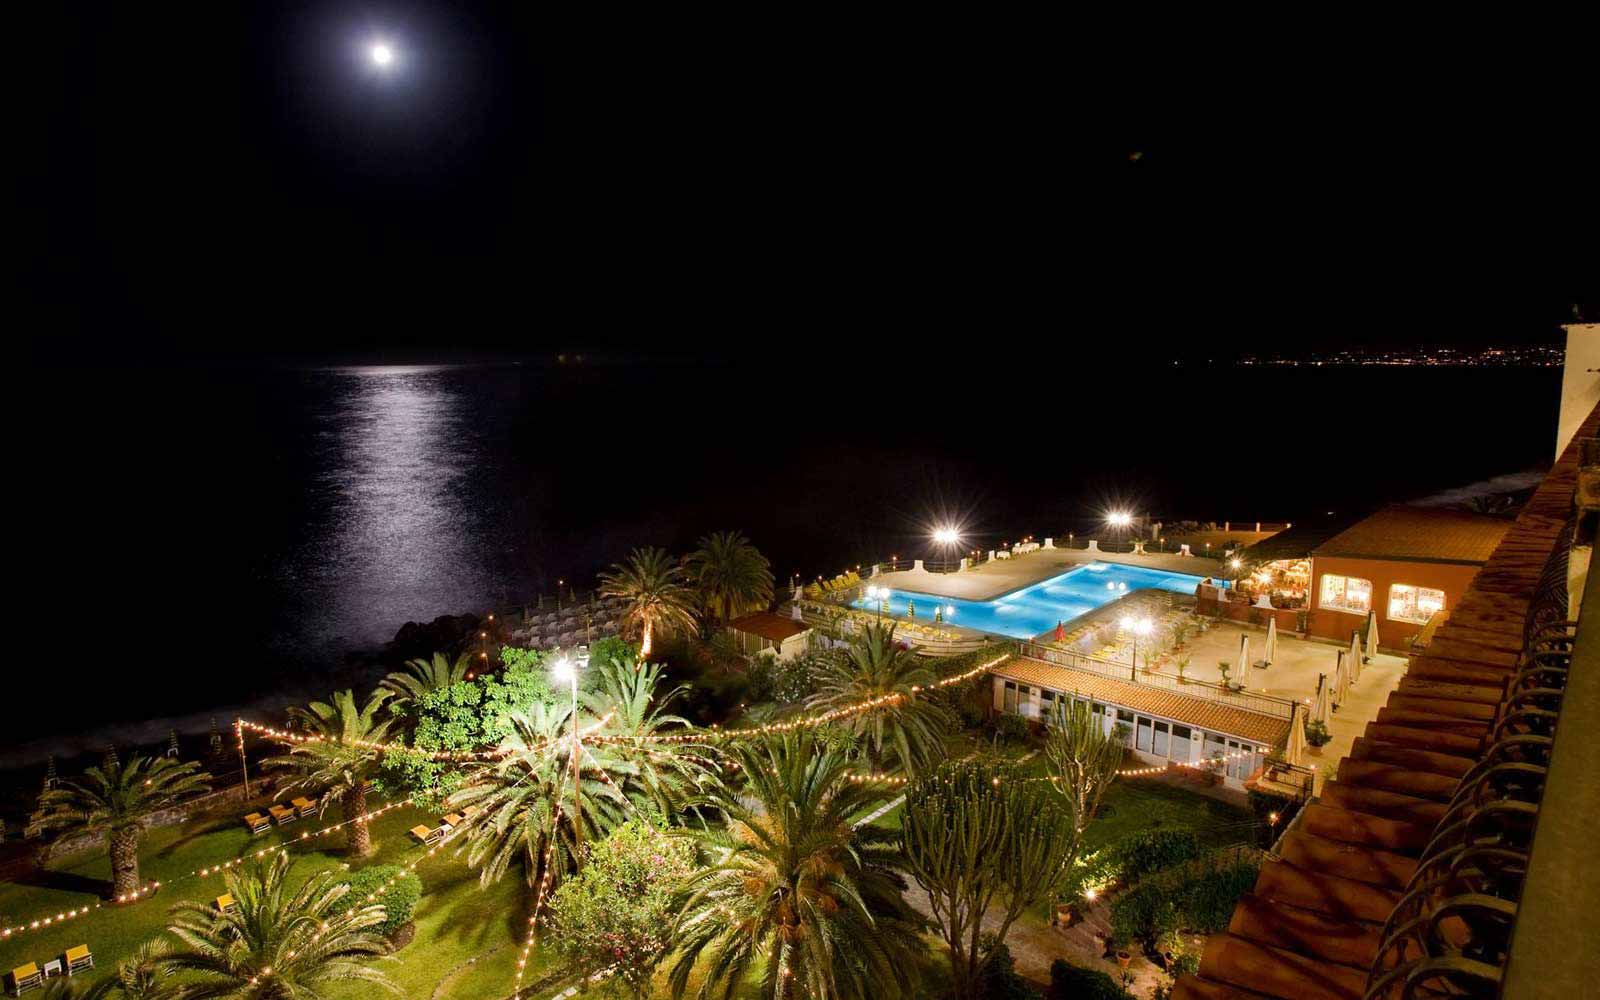 Hilton Giardini Naxos by night